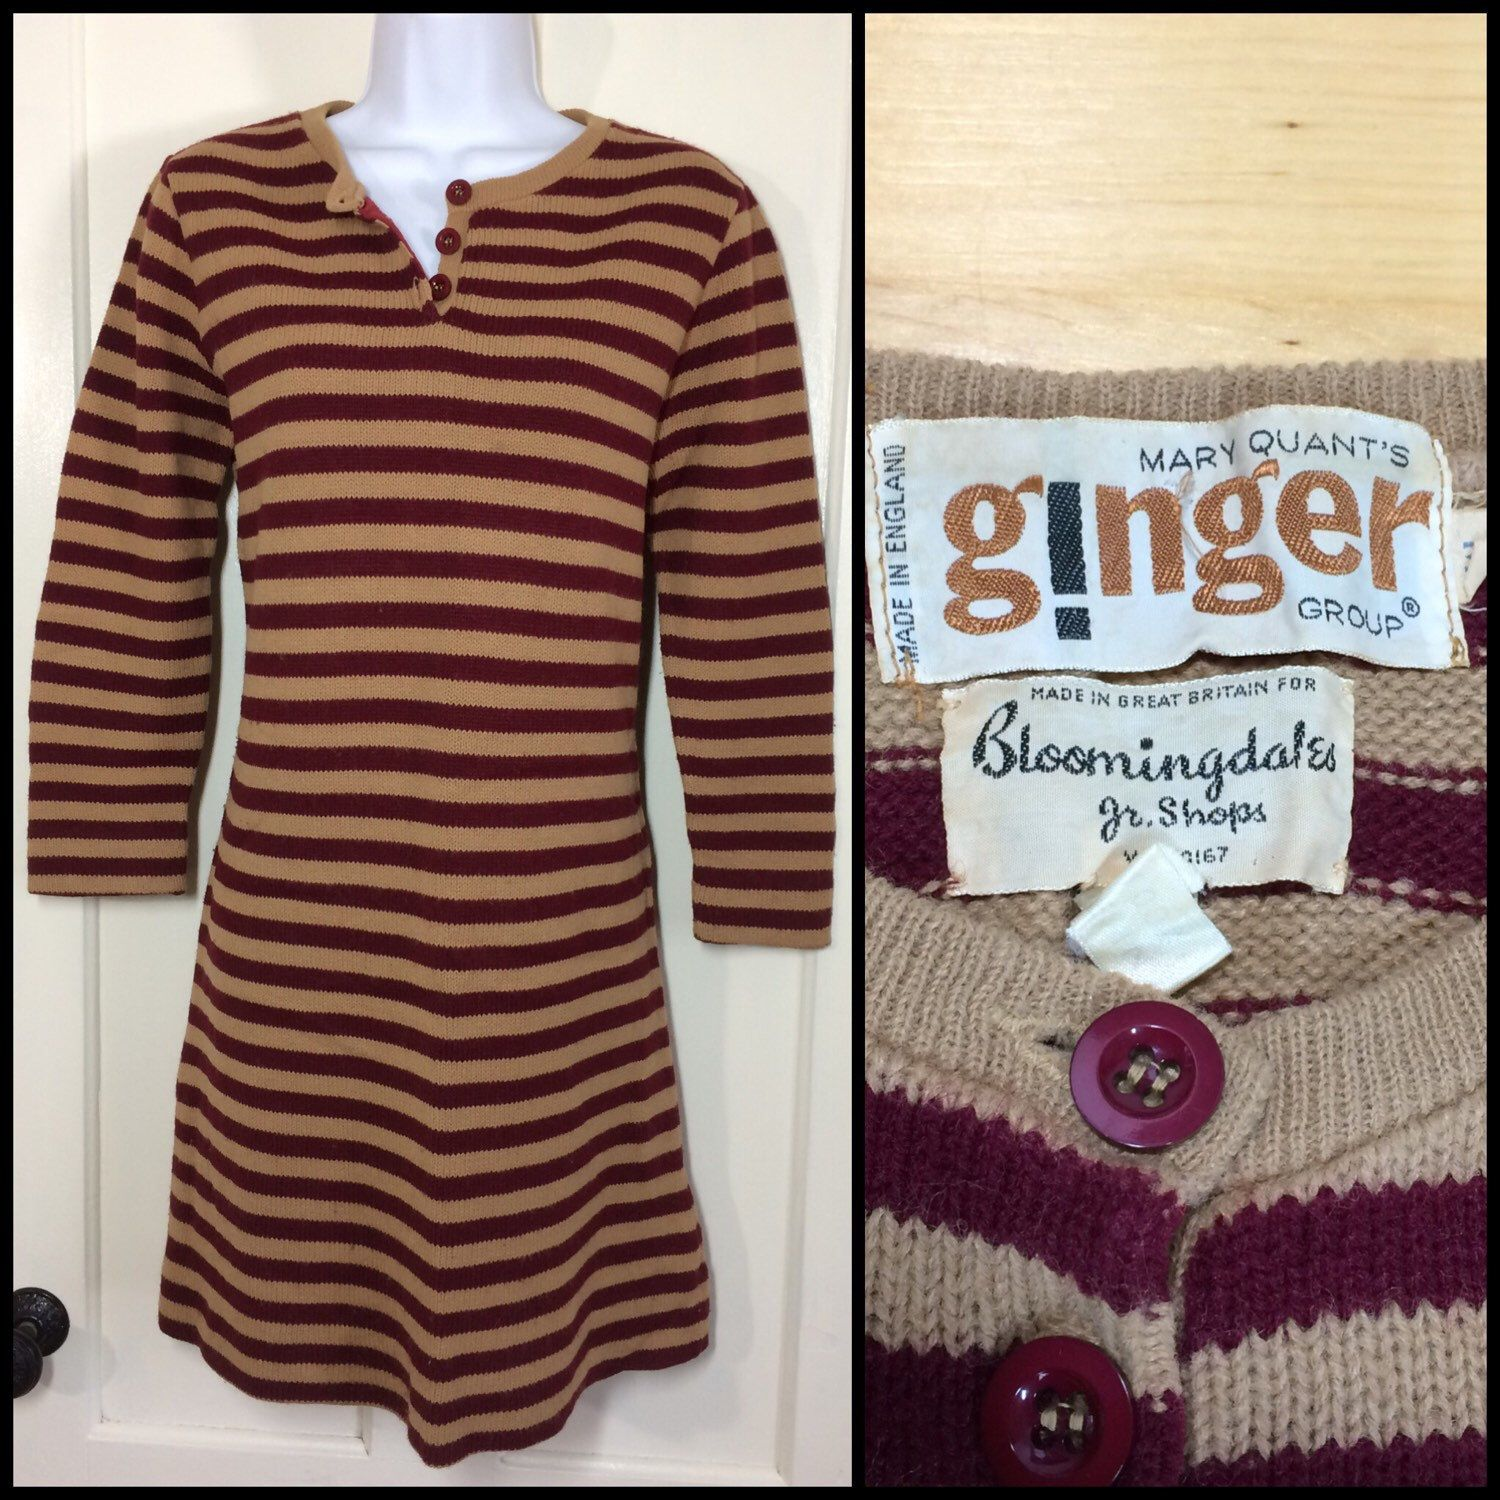 Vintage Designer Mary Quant striped sweater dress. #mod #punk ...